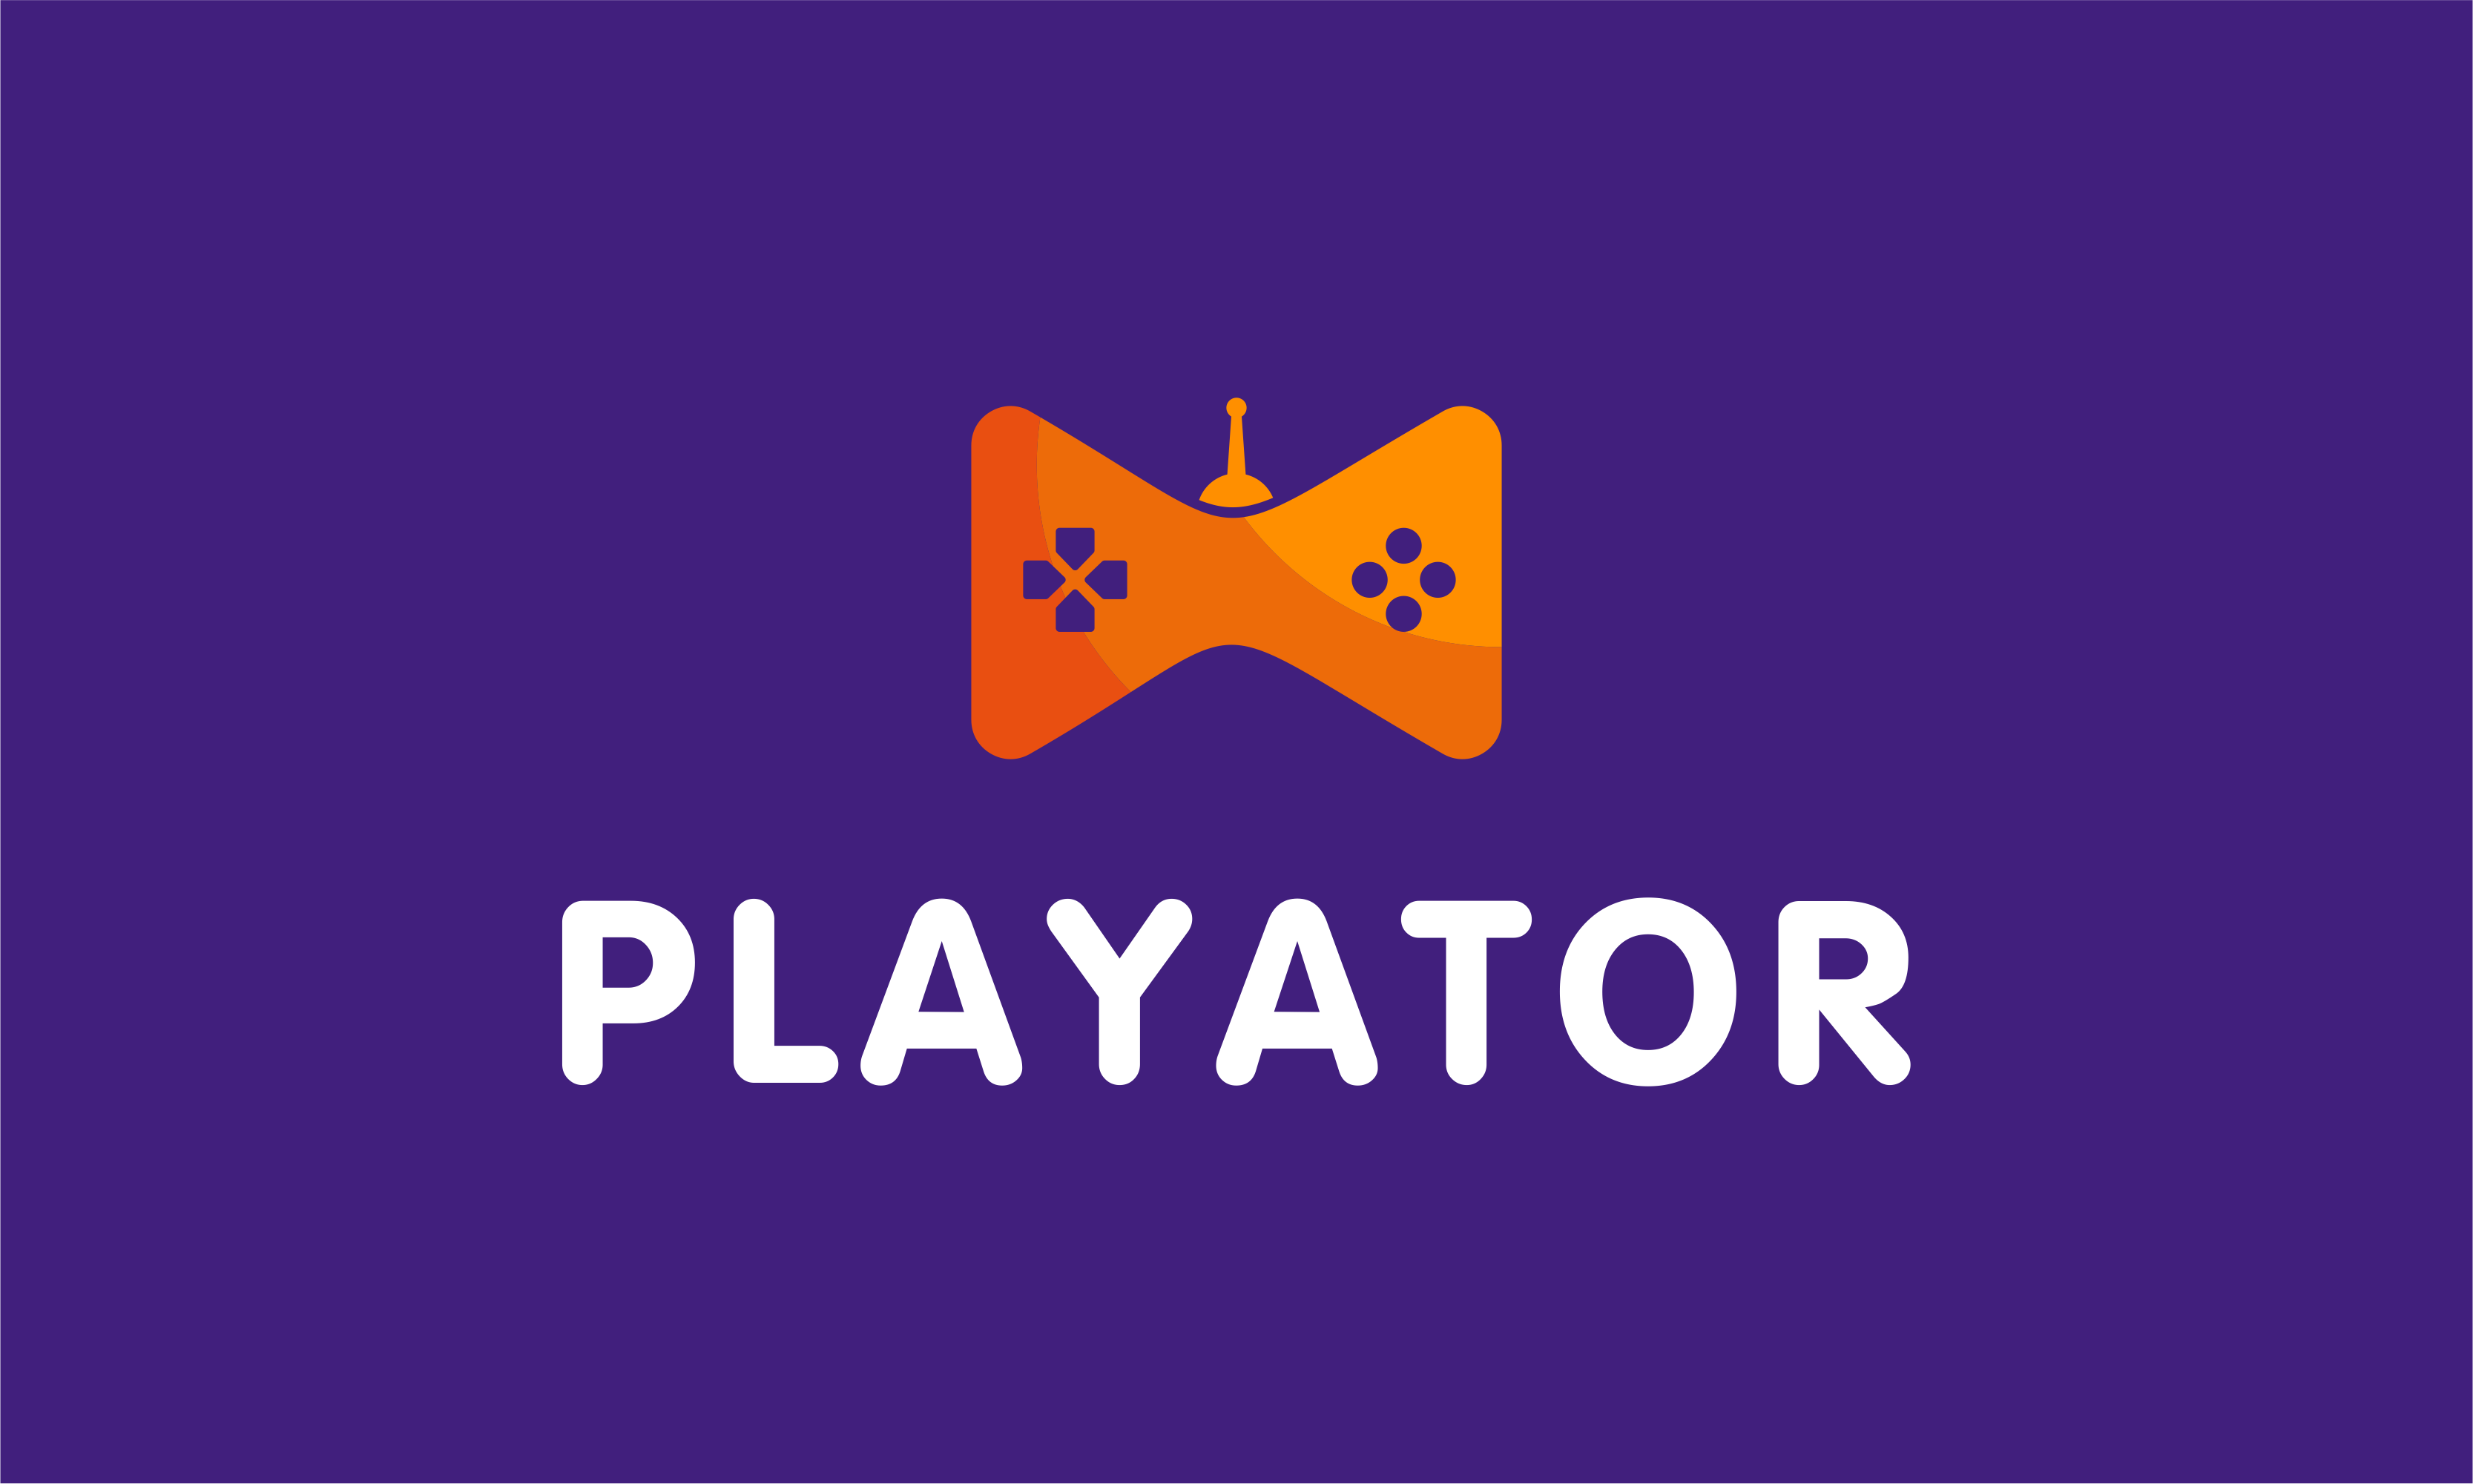 playator logo